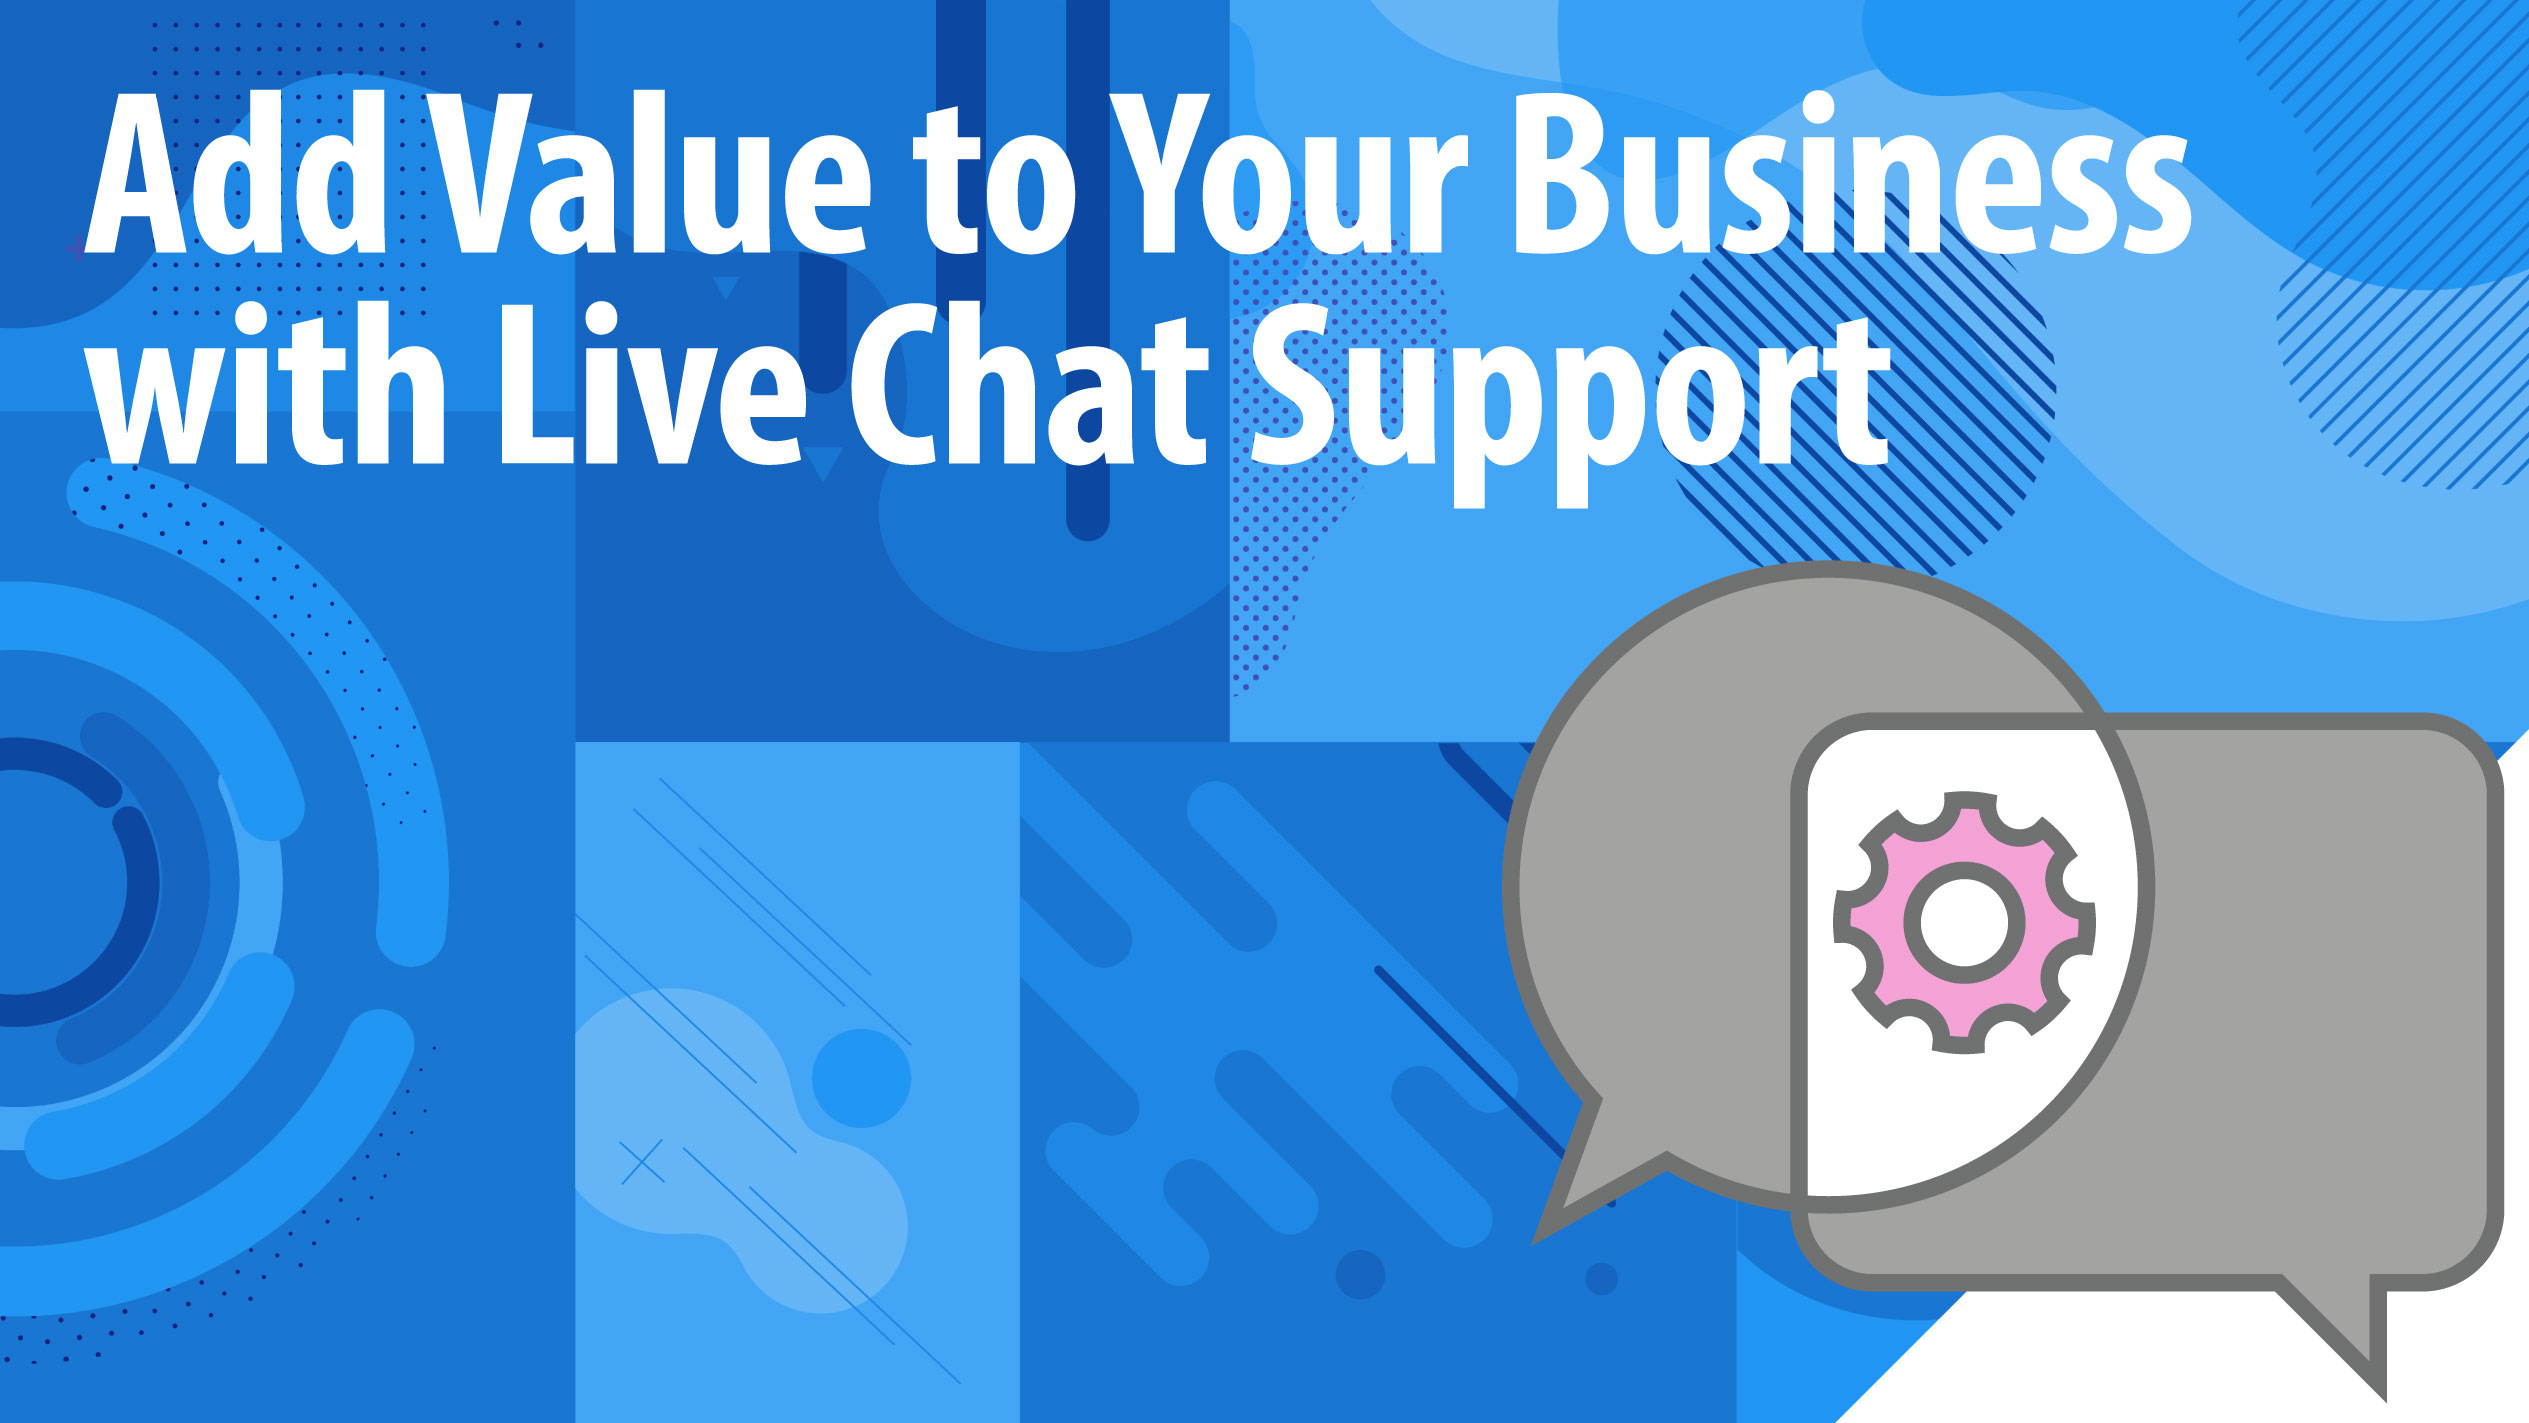 Add Value to Your Business with Live Chat Support